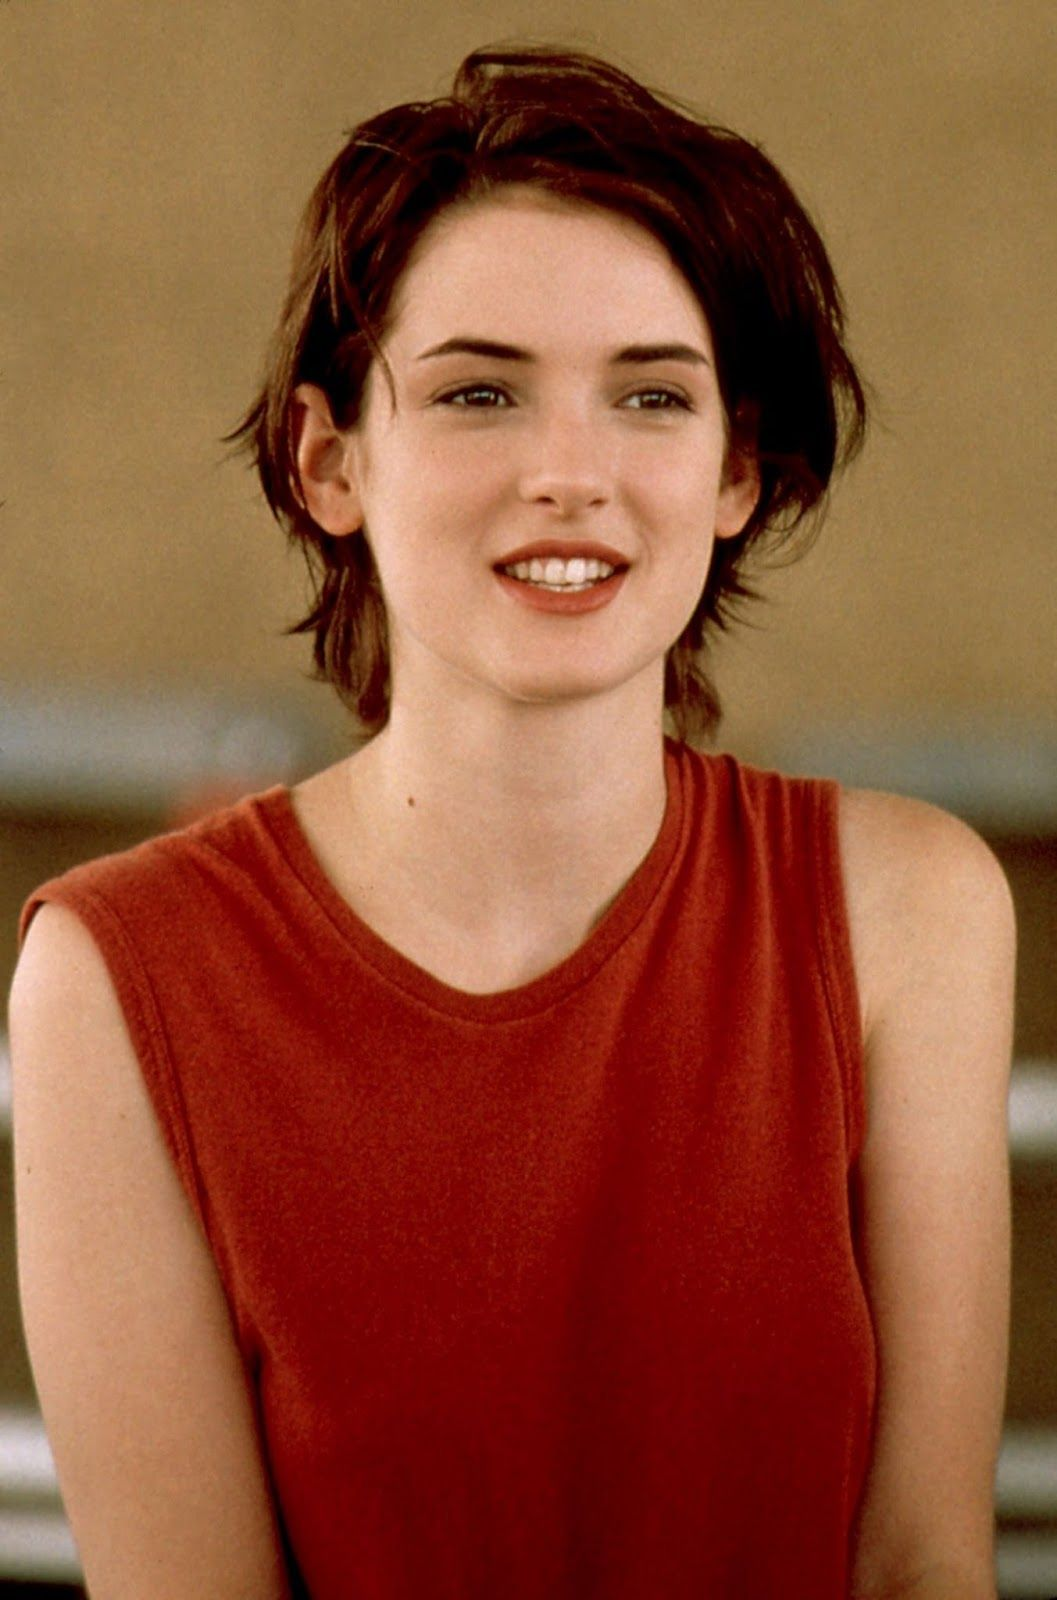 Image Result For Winona Ryder Reality Bites Haircut Winona Ryder